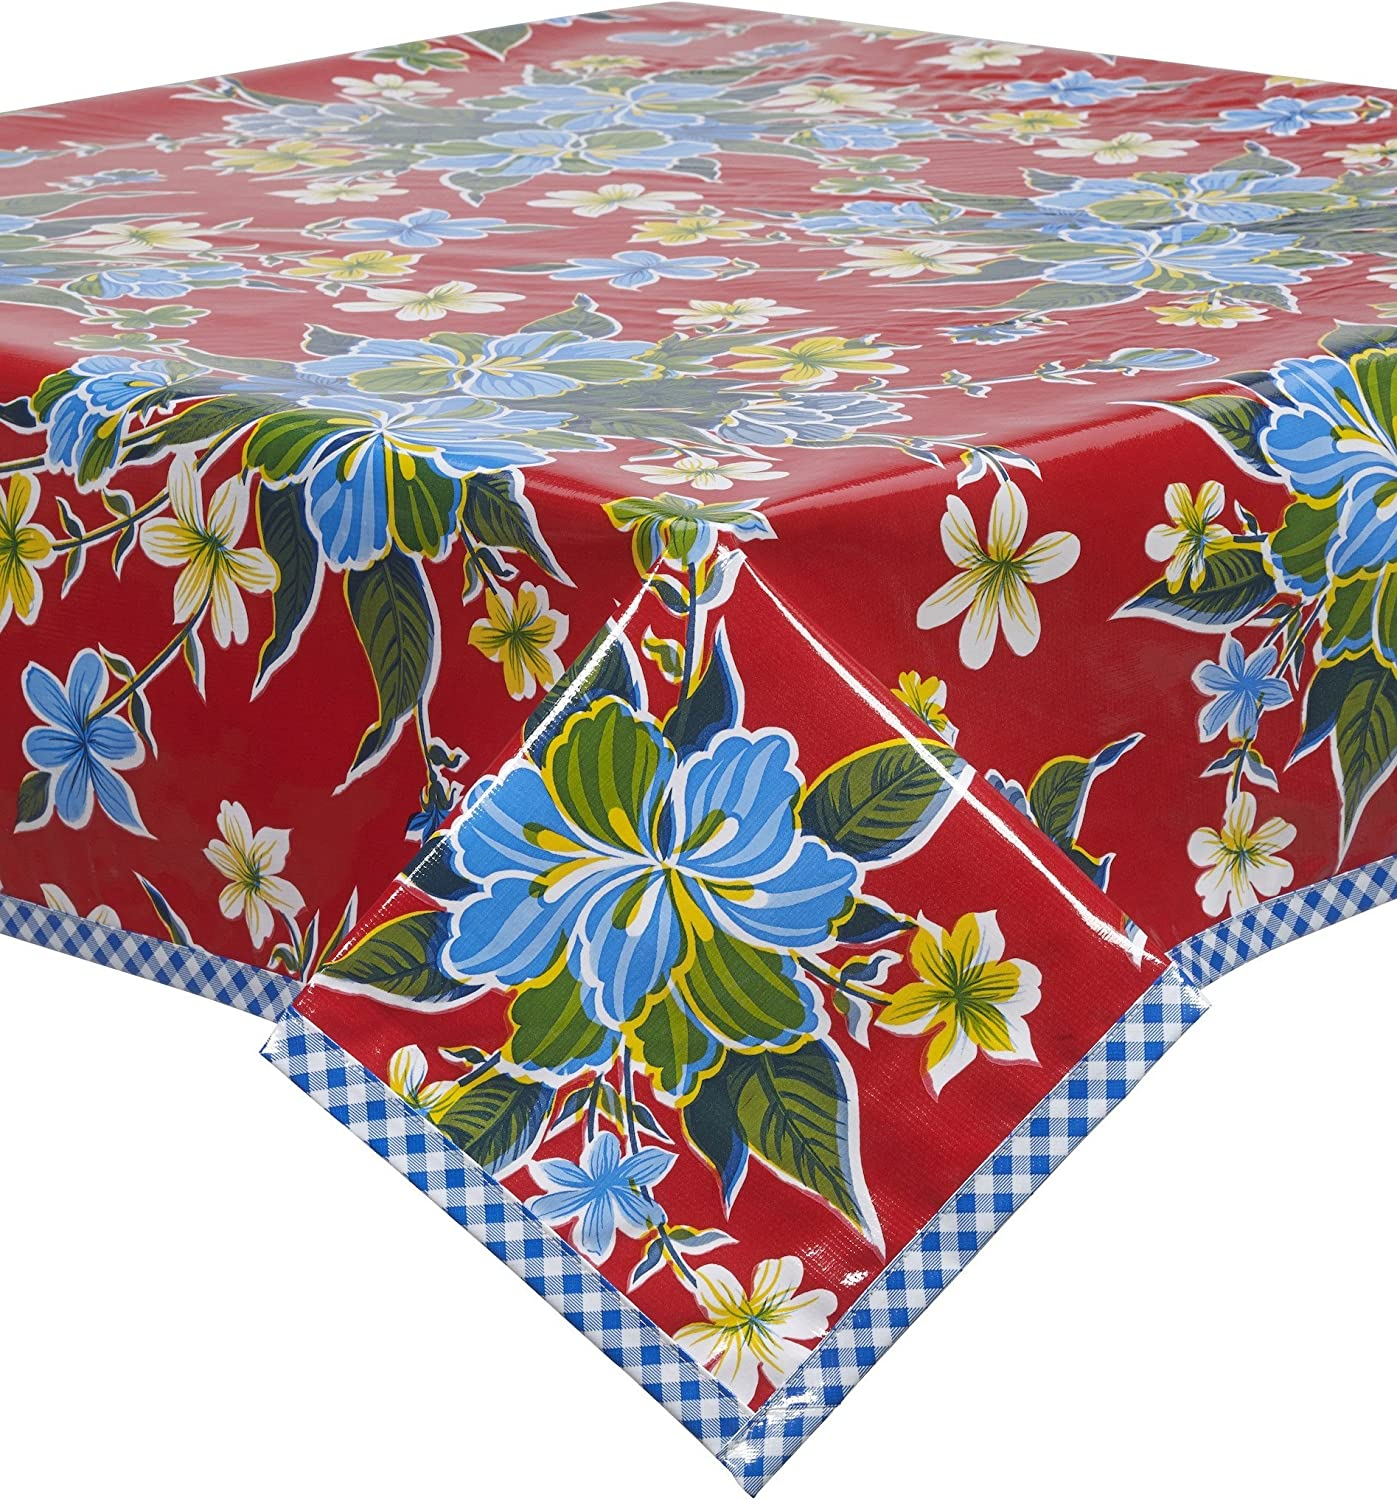 The Aloha---Reversible oilcloth placemats in an hibiscus print and gingham